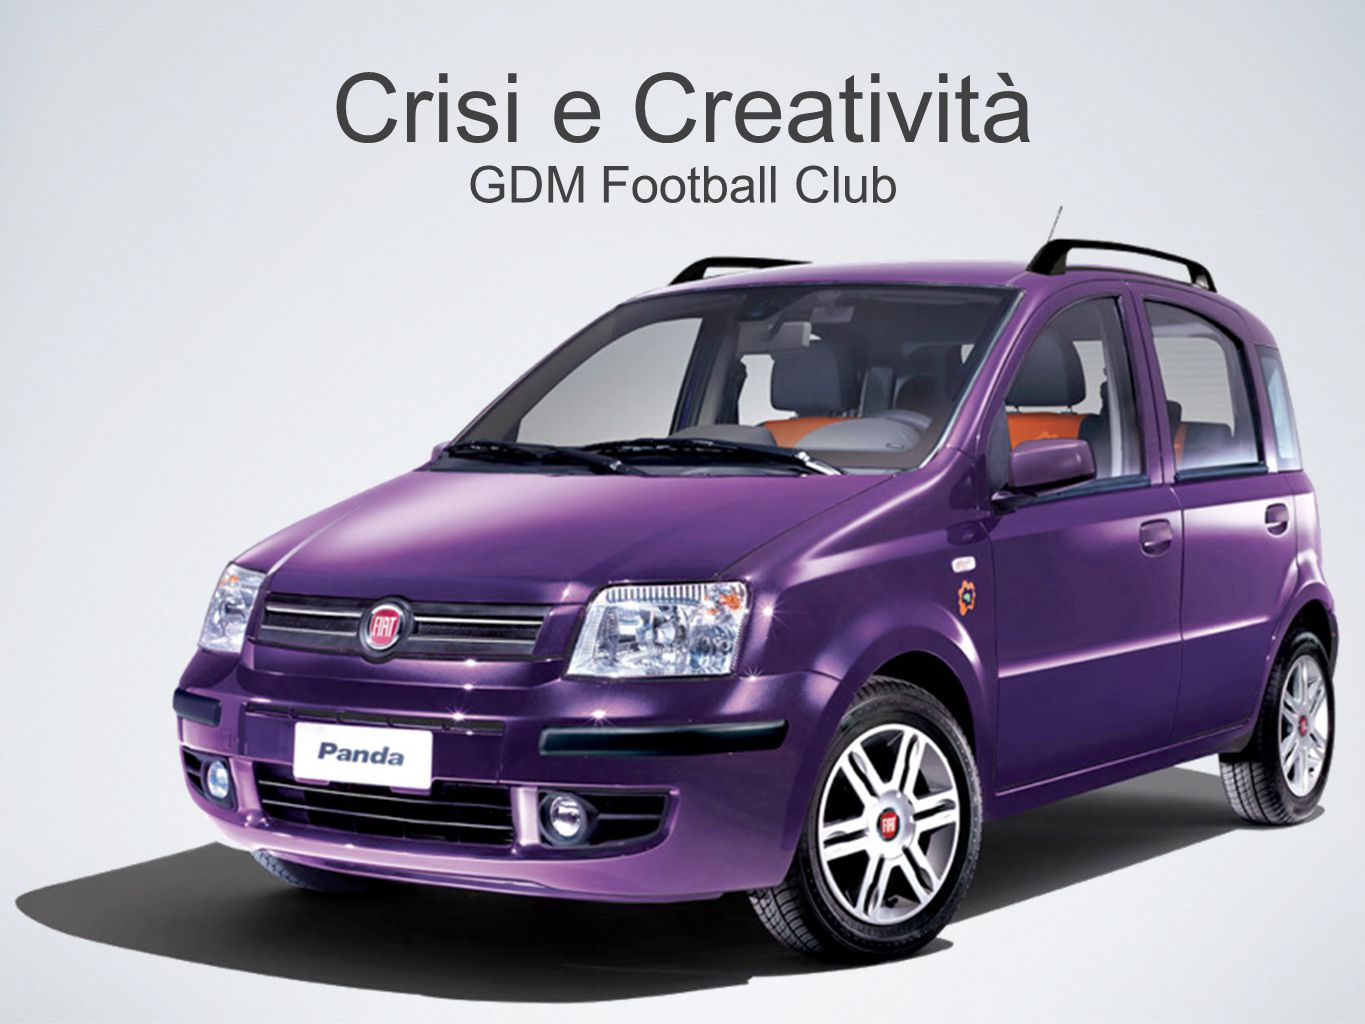 Crisi e Creatività GDM Football Club